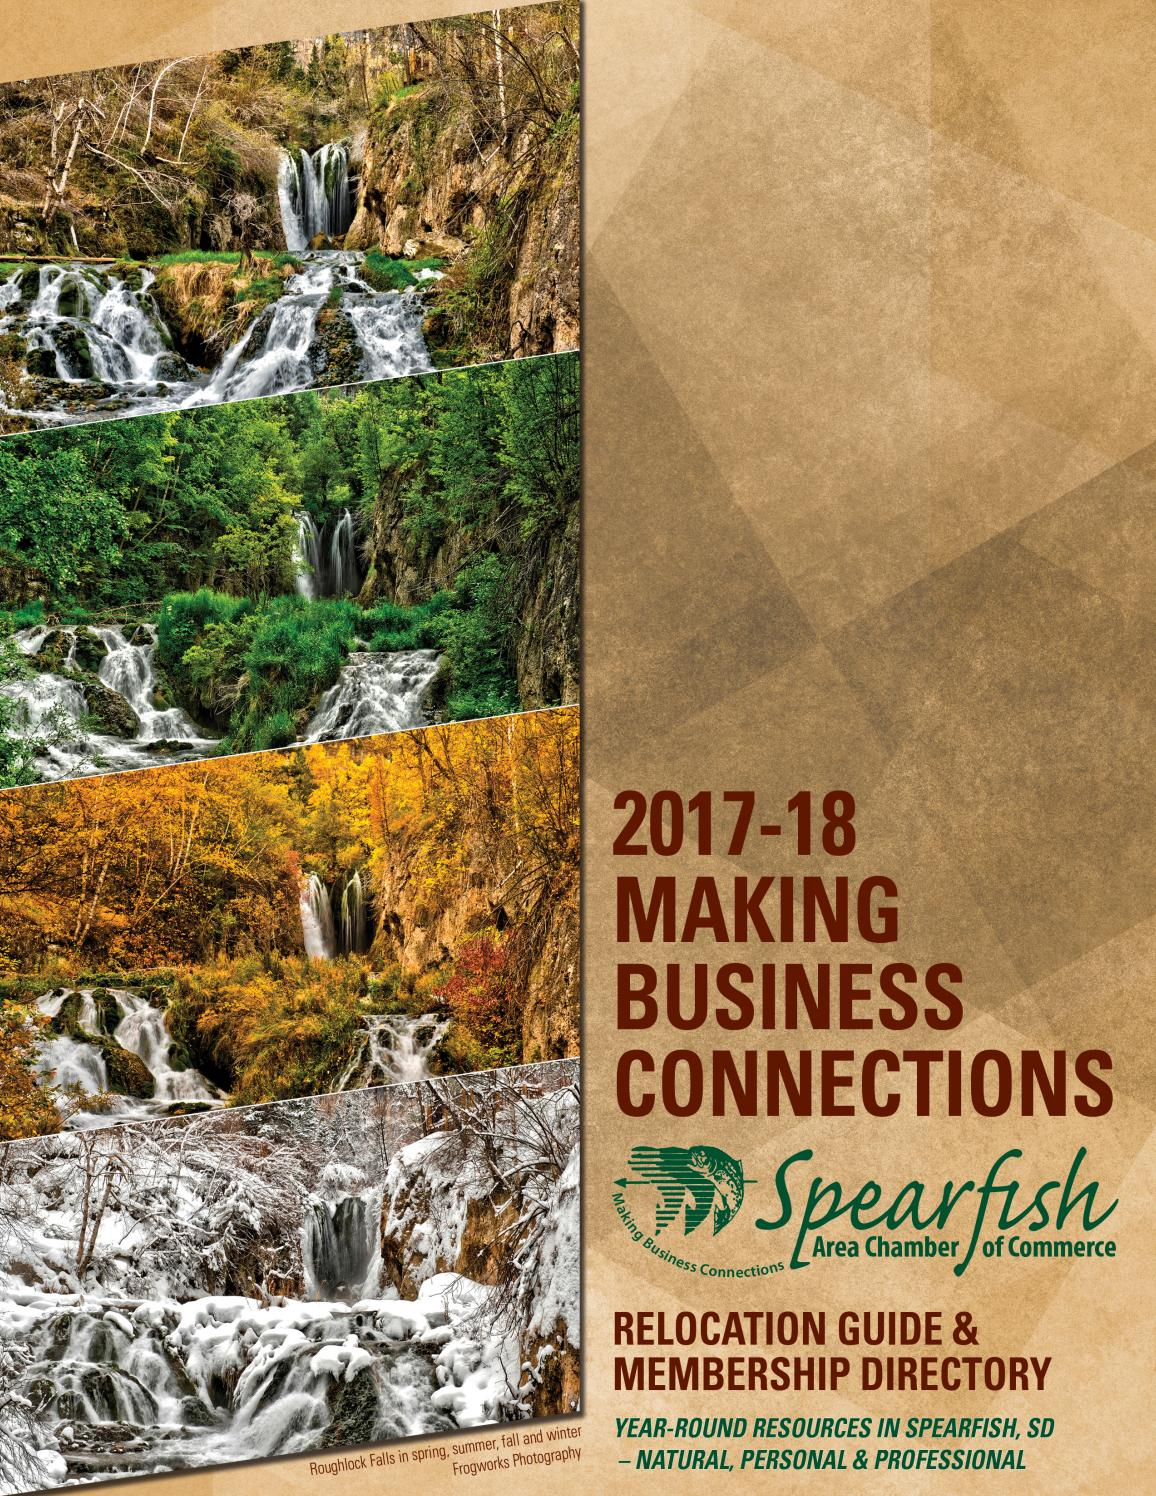 Making Business Connections is the official annual magazine, membership directory and relocation guide for the Spearfish, SD, Area Chamber of Commerce.